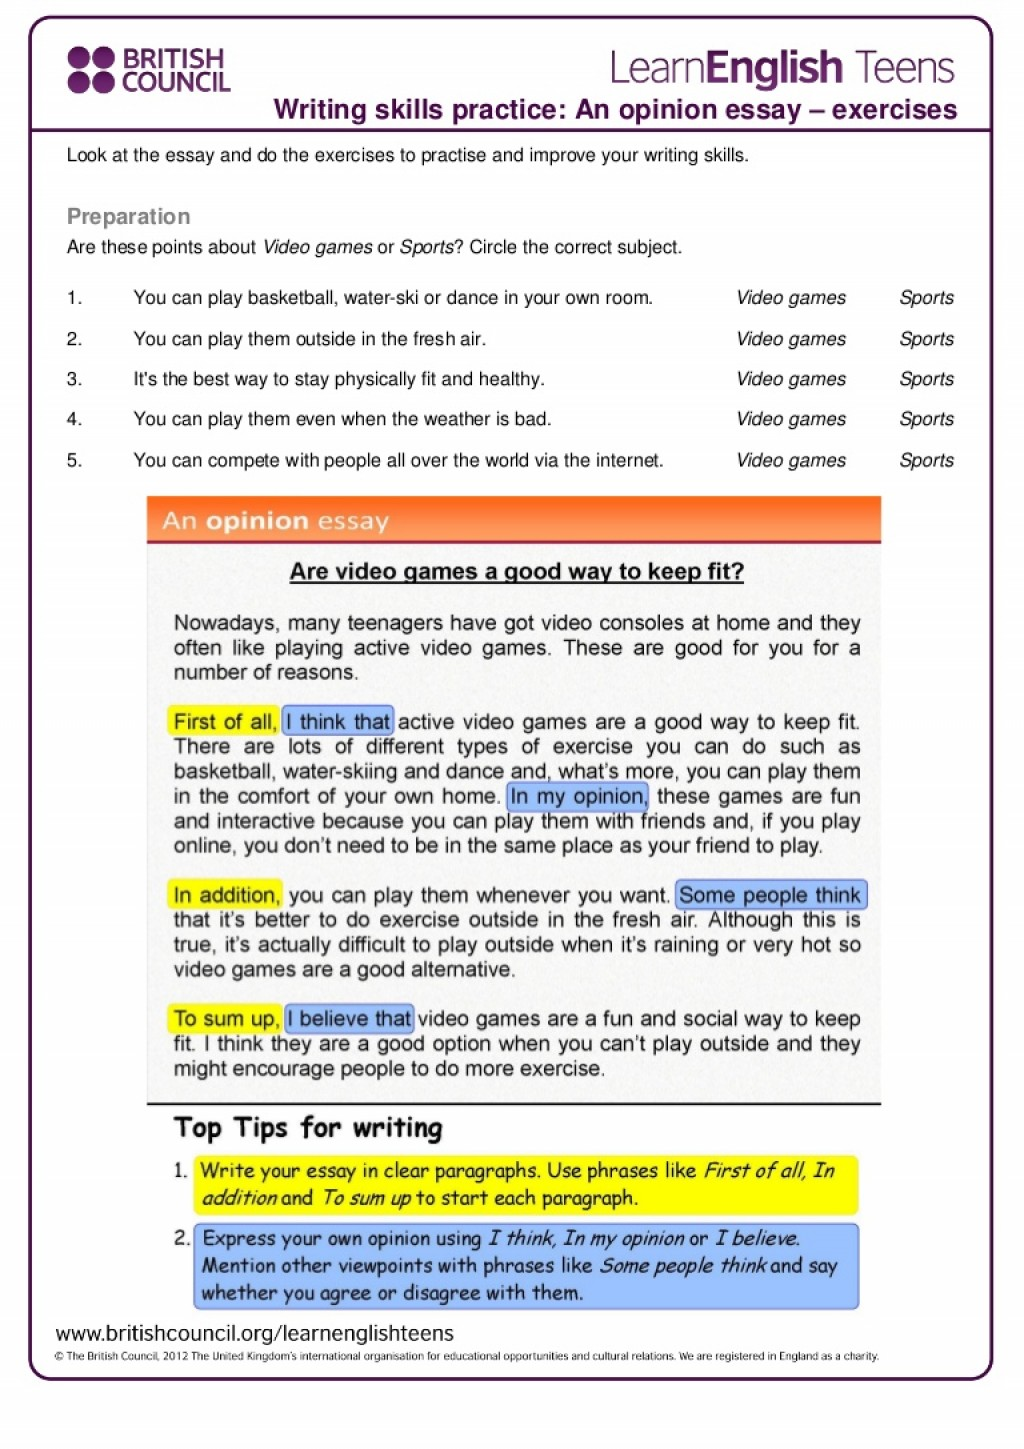 009 Writing Skills Essay Online Ielts Courses Podcast Jc Economics How To Write An Opinion 4th Grade Anopinionessay Exercises Thumbn Unbelievable Conclusion On A Book Video Large